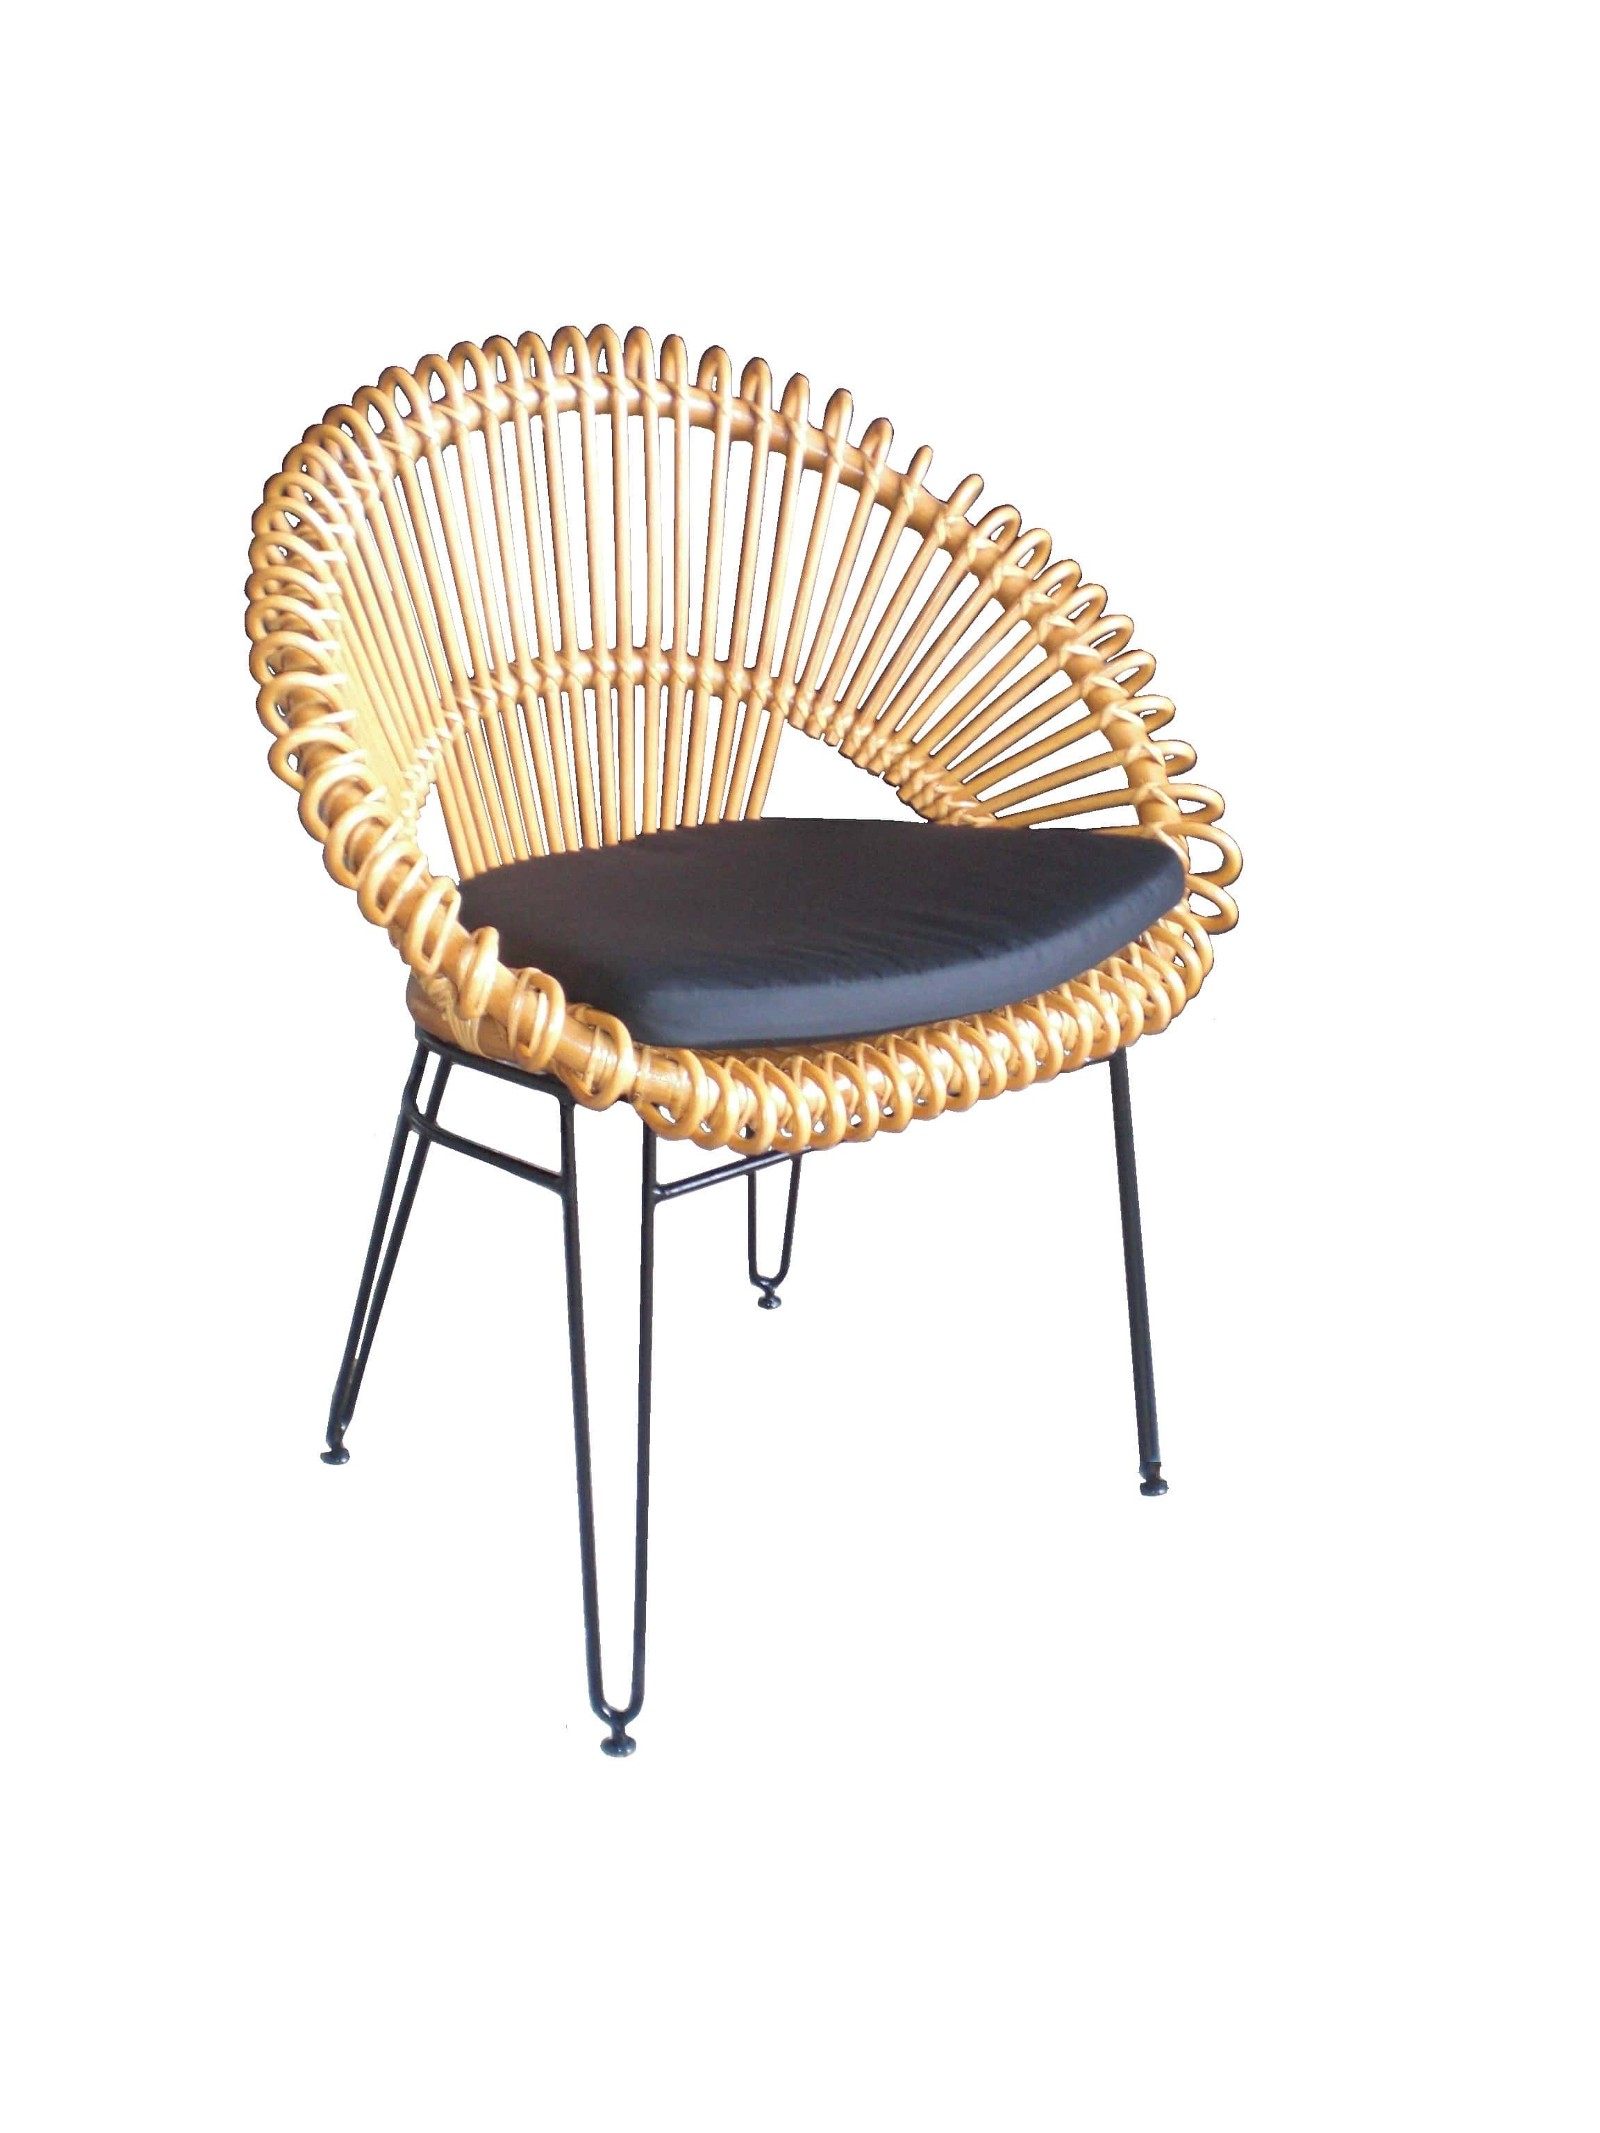 Wicker Circle Chair Bamboo Round Rattan With